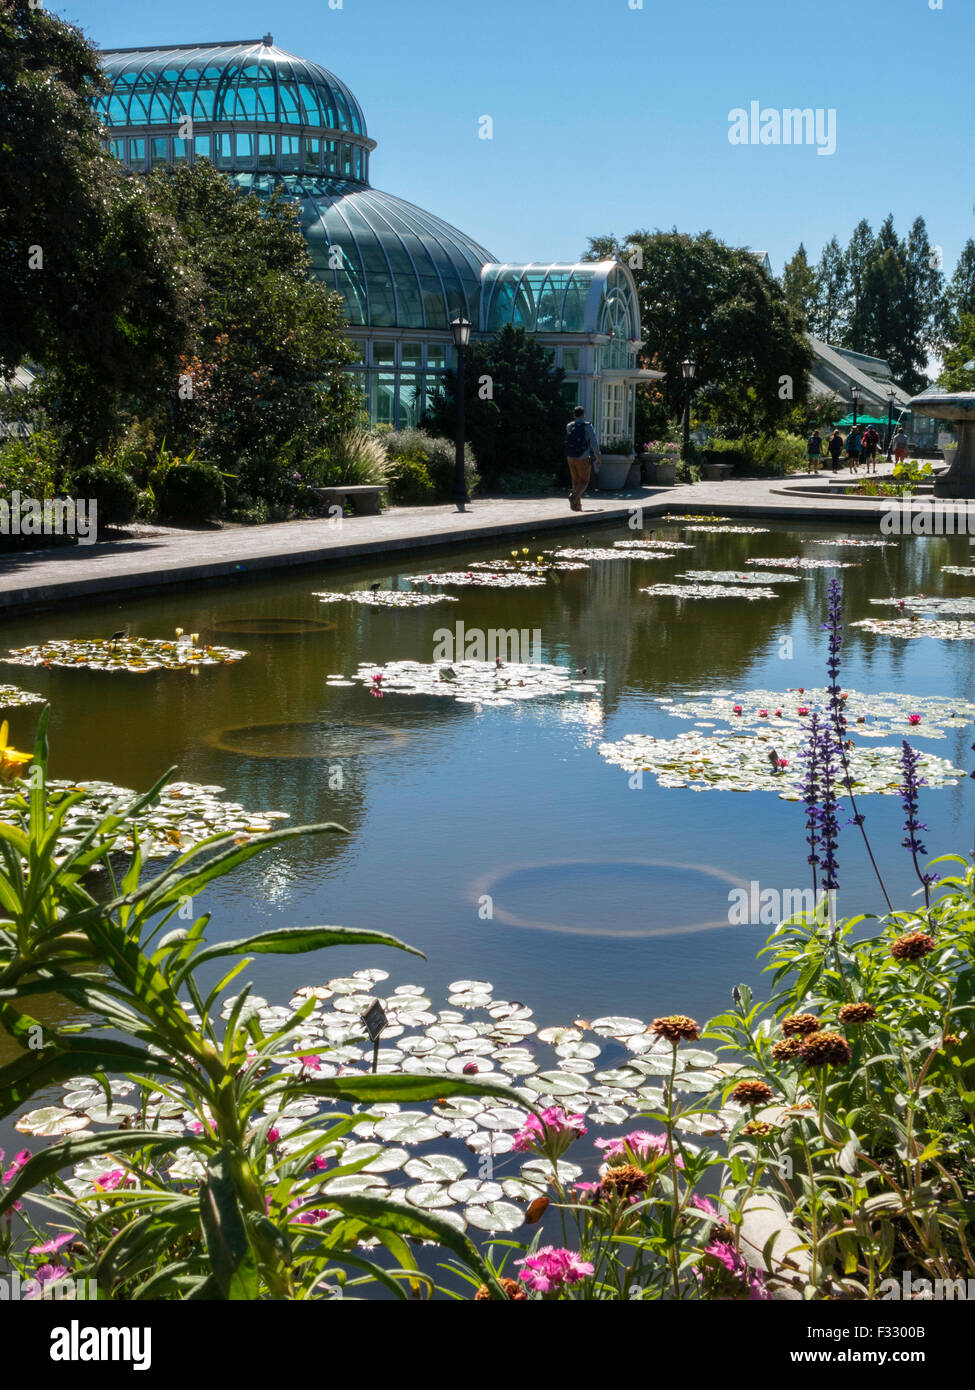 Bernstein the architects marion weiss and michael manfredi are well known at the brooklyn botanic garde. Lily Pool Terrace In The Brooklyn Botanic Garden Nyc Usa Stock Photo Alamy